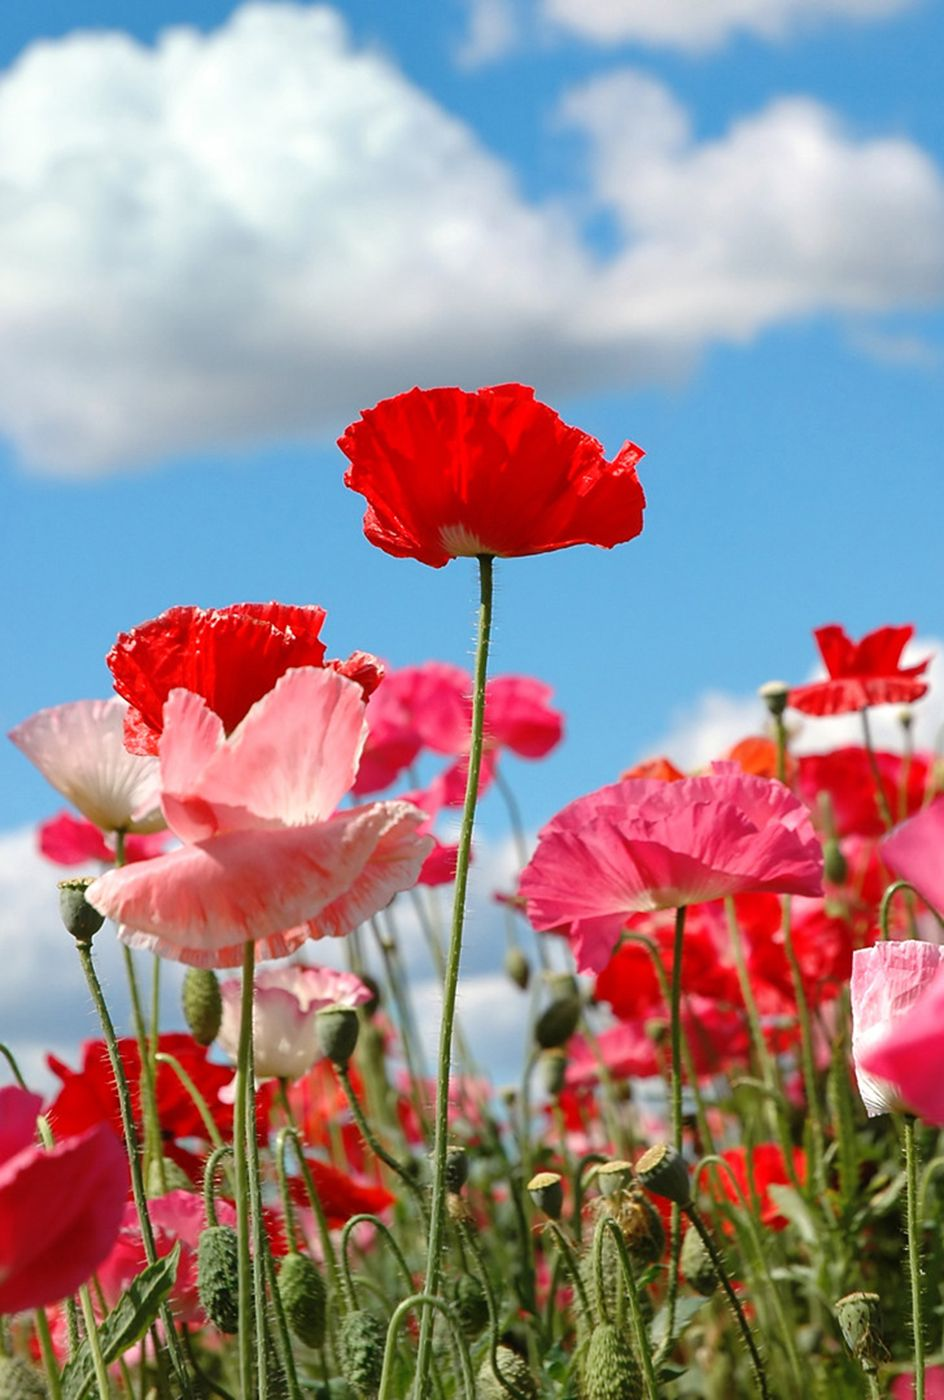 Shades of Red - Poppies   Flowers ❀ Flowers ❀ Flowers   Pinterest ...